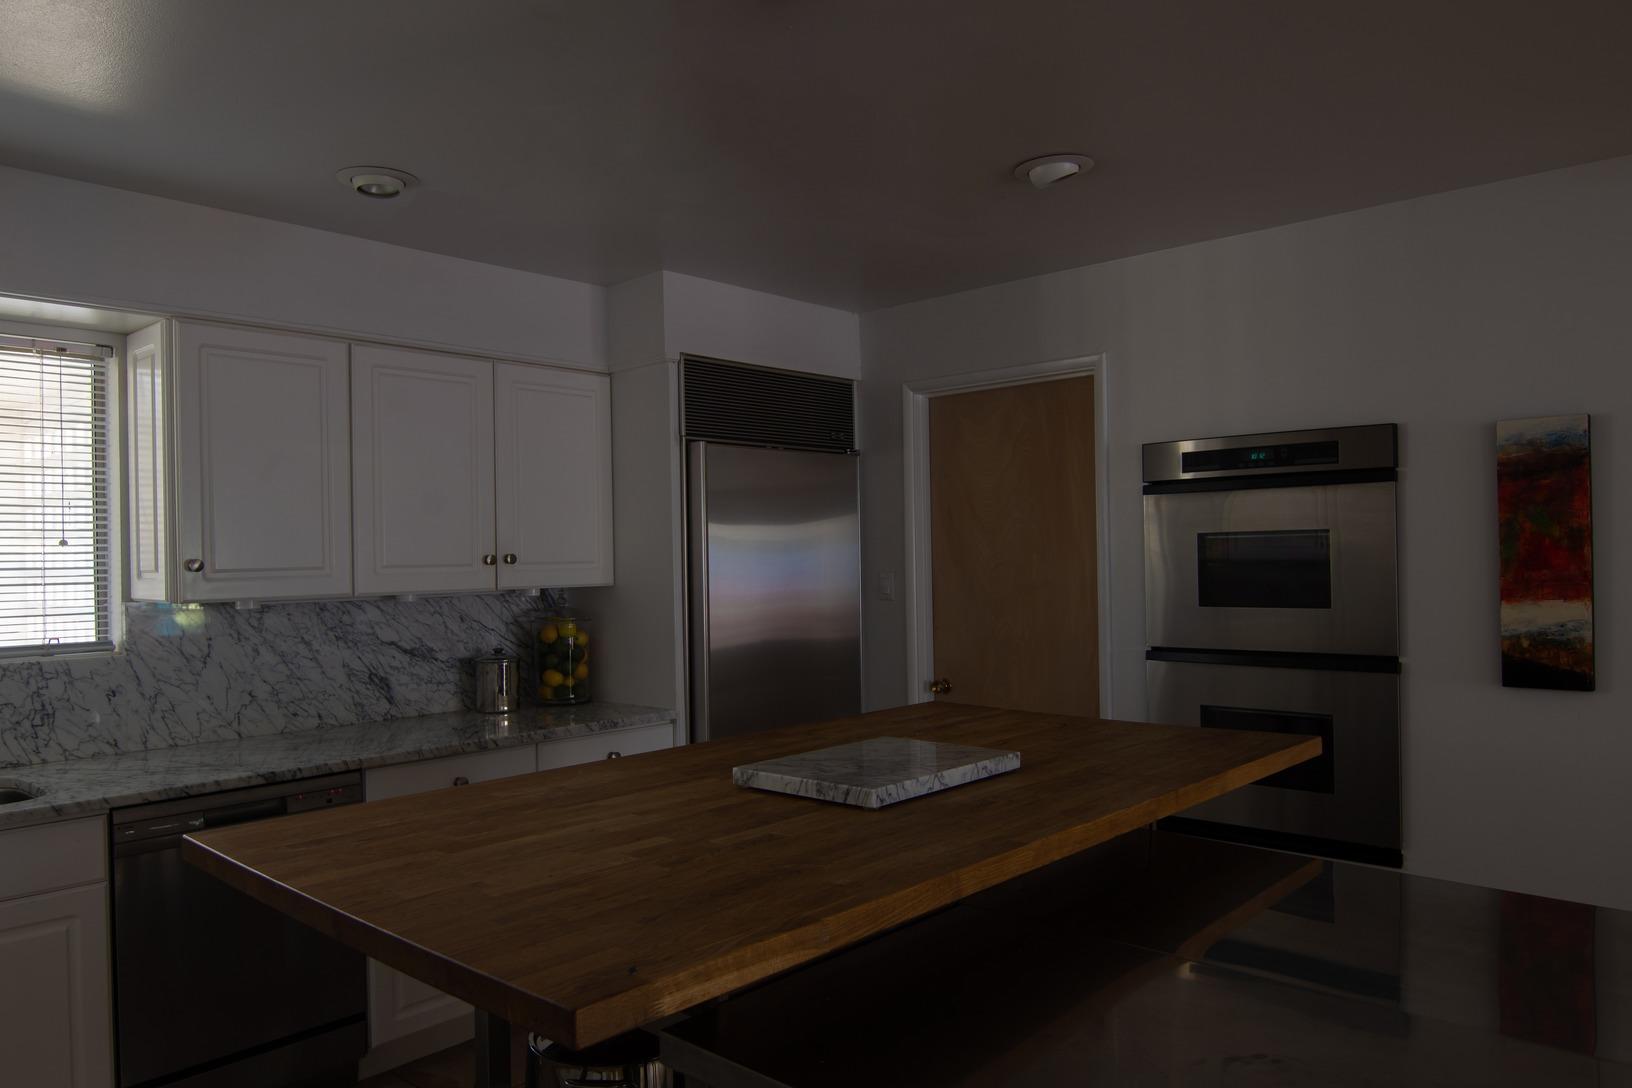 Brighter Kitchen in Council, NC - Before Photo